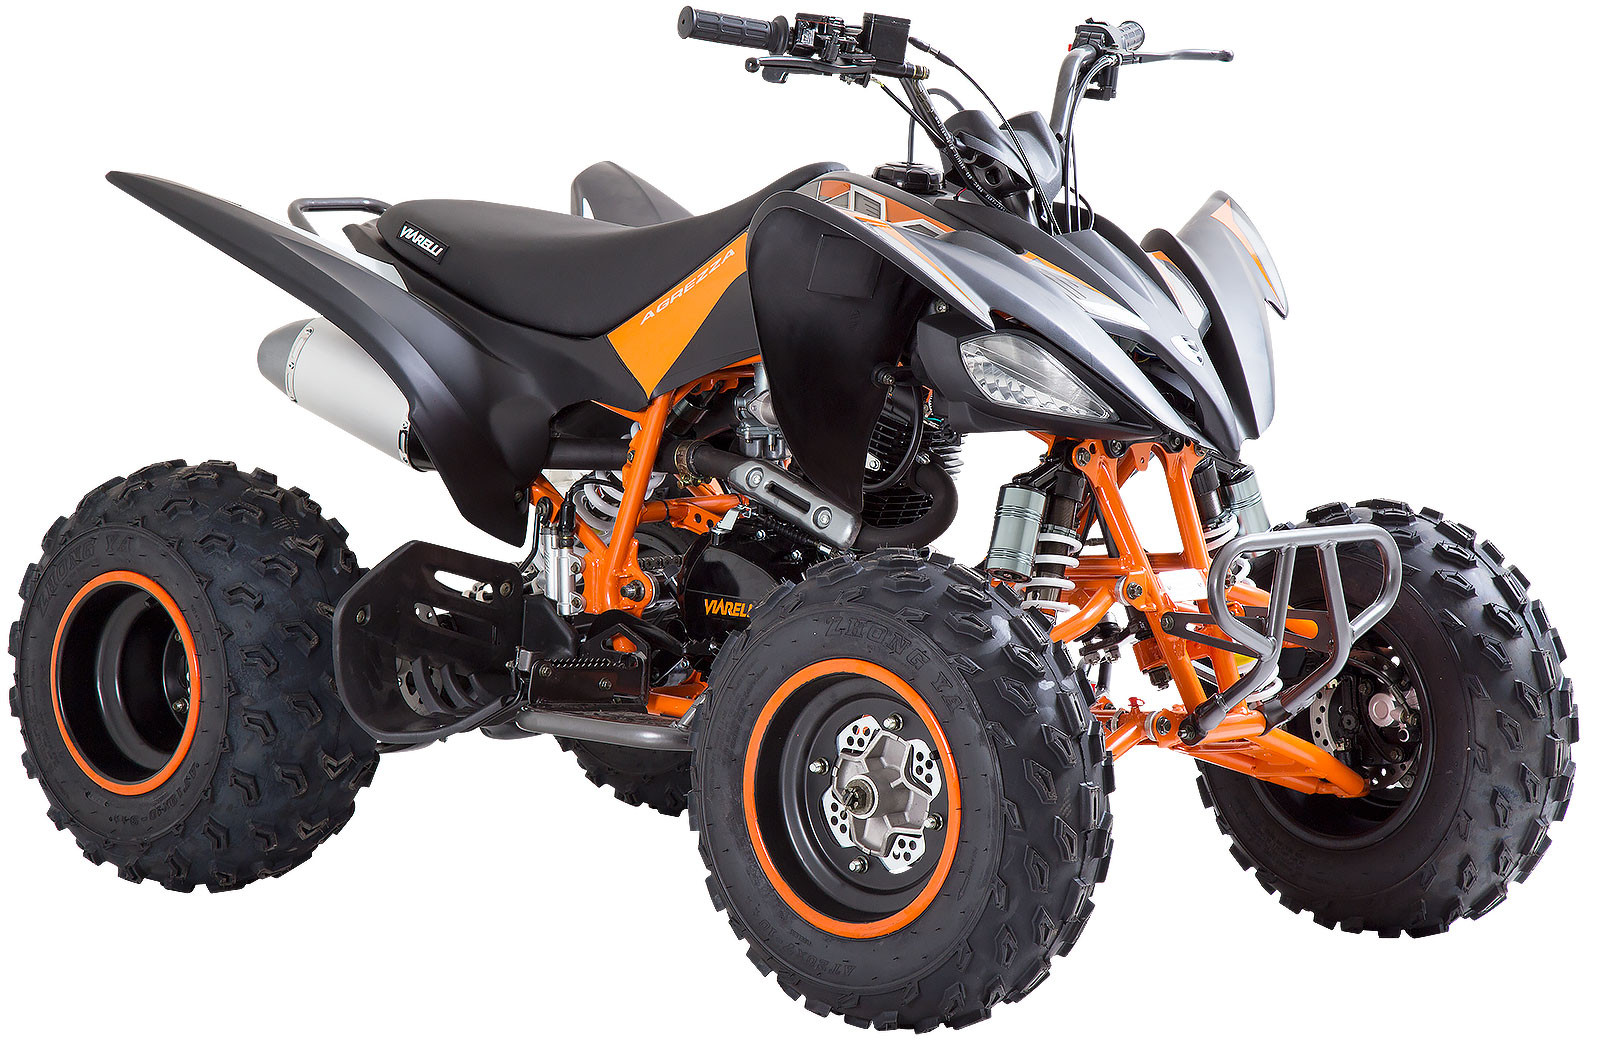 Viarelli Agrezza ATV 250cc